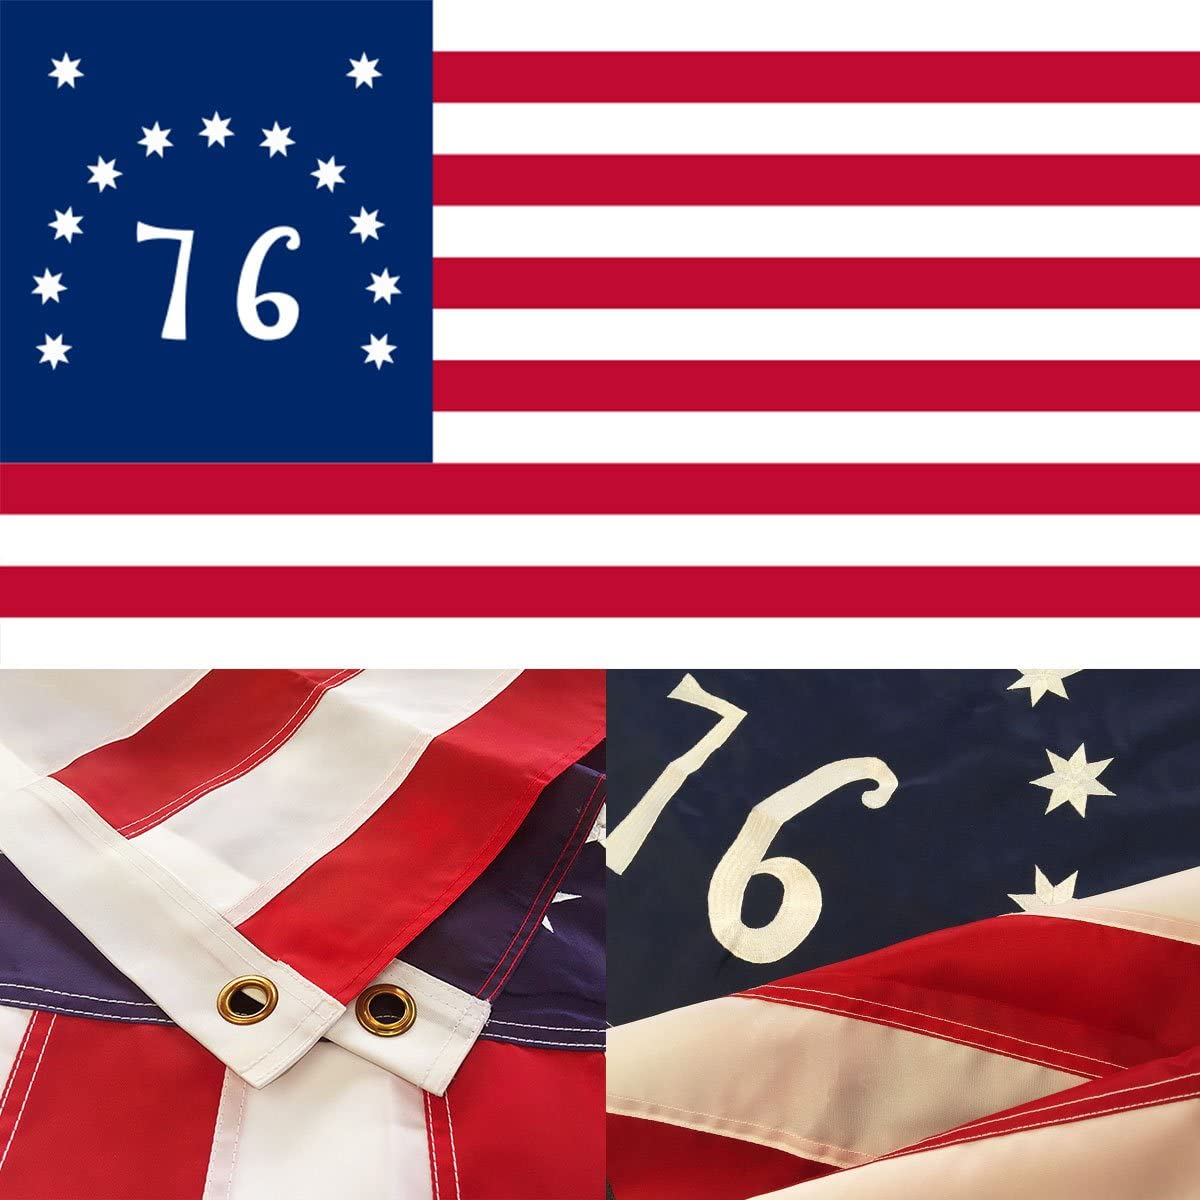 Amazon Com Winbee American Bennington 76 Flag 3x5 Ft Premium Embroidered Stars Heavy Duty 300d Nylon Sewn Stripes And Brass Grommets Best Us 1776 Bennington Revolution Flag Great For Outdoor Indoor Display